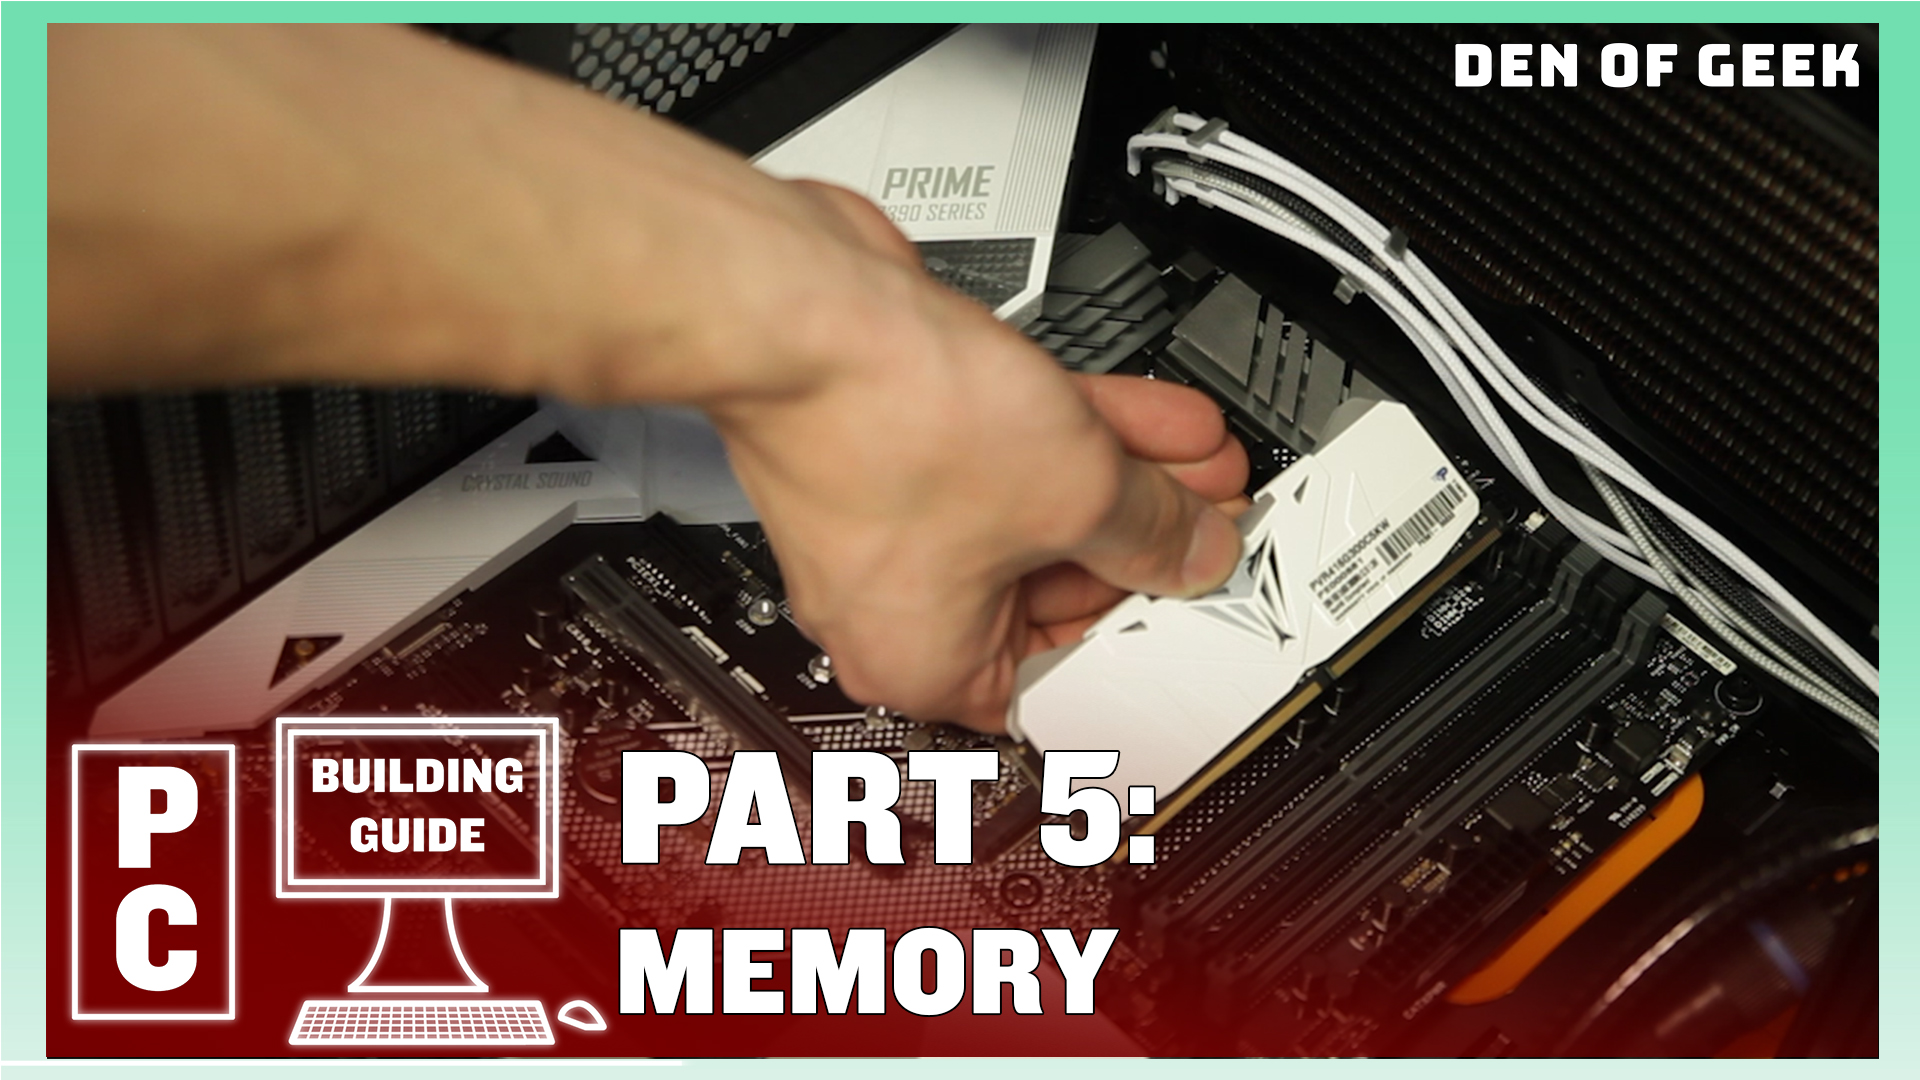 Den of Geek PC Building Guide: Memory (Part 5)